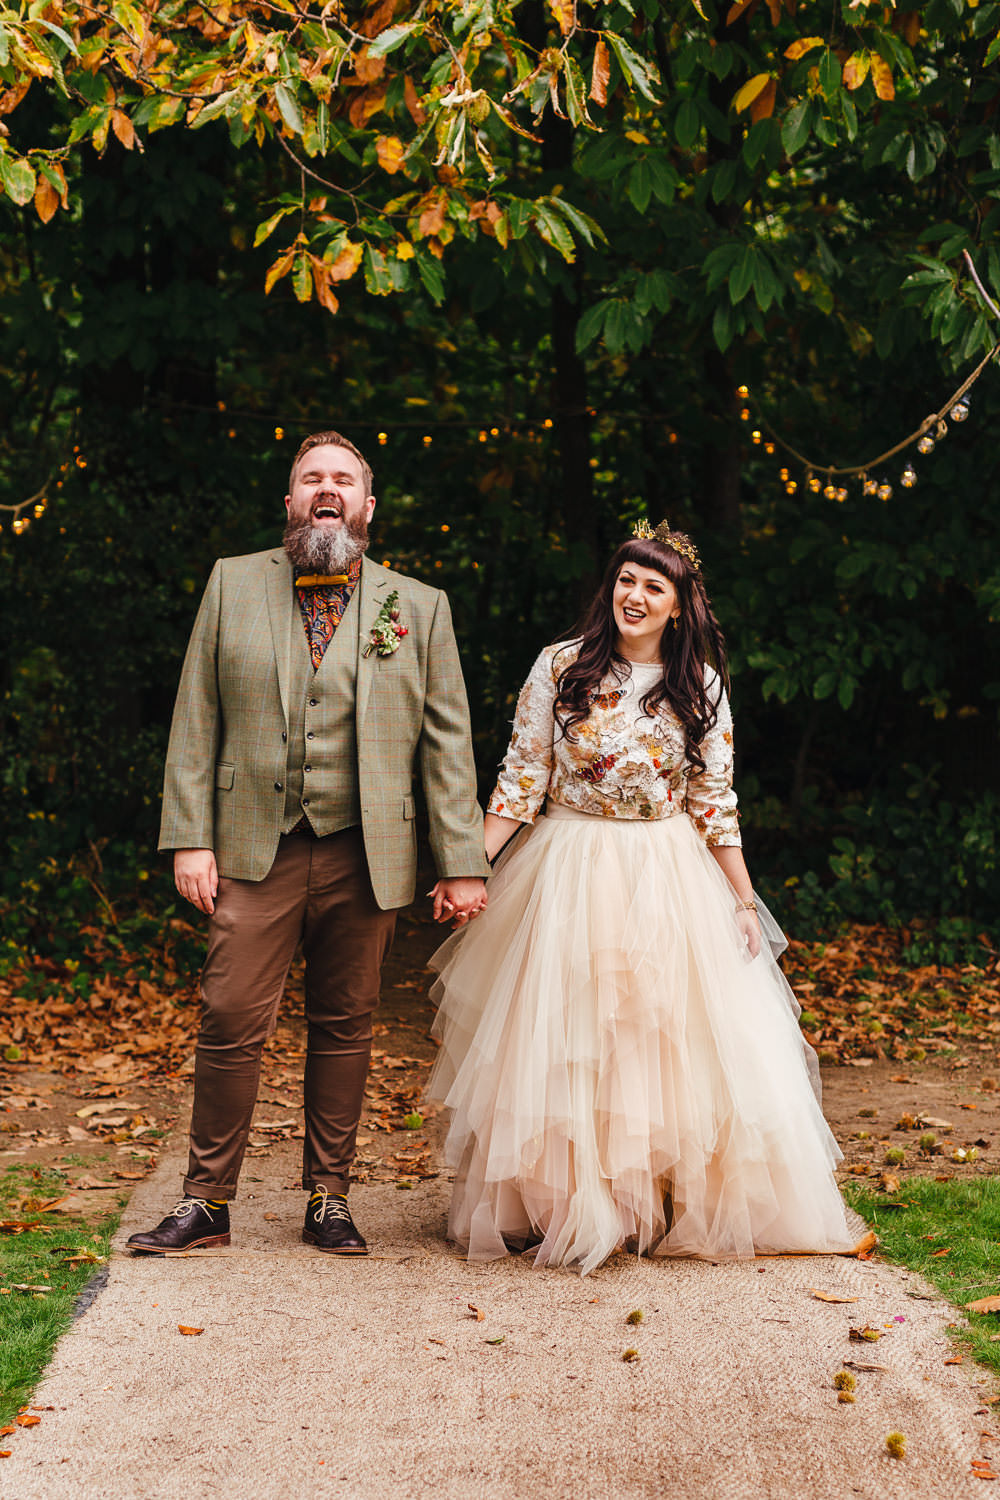 Alternative Bride and Groom Kent Wedding Photographer. Quirky Fun Colourful Kent Wedding Photographer